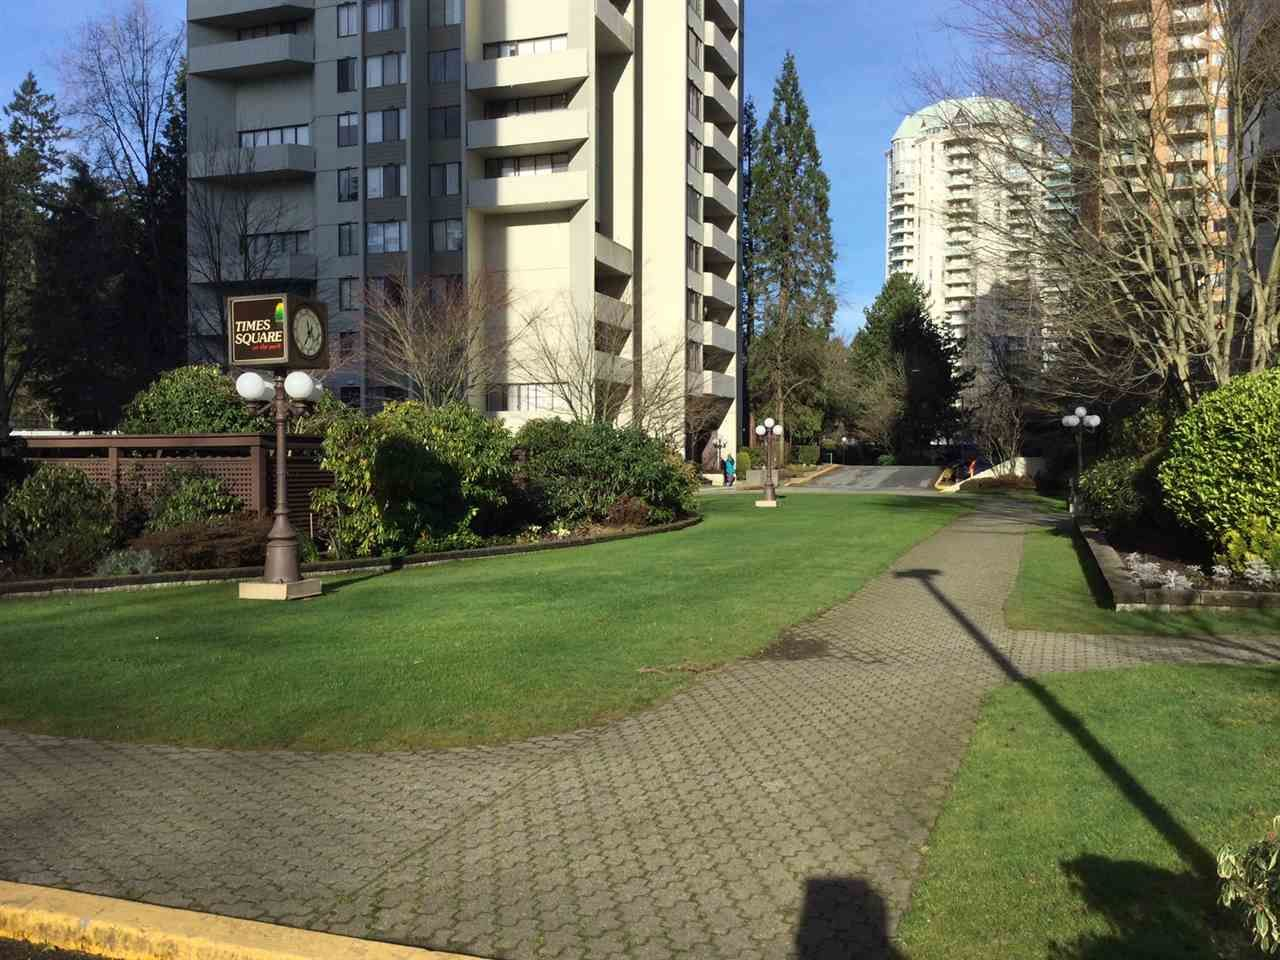 """Photo 3: Photos: 1802 4300 MAYBERRY Street in Burnaby: Metrotown Condo for sale in """"Times Square"""" (Burnaby South)  : MLS®# R2529822"""